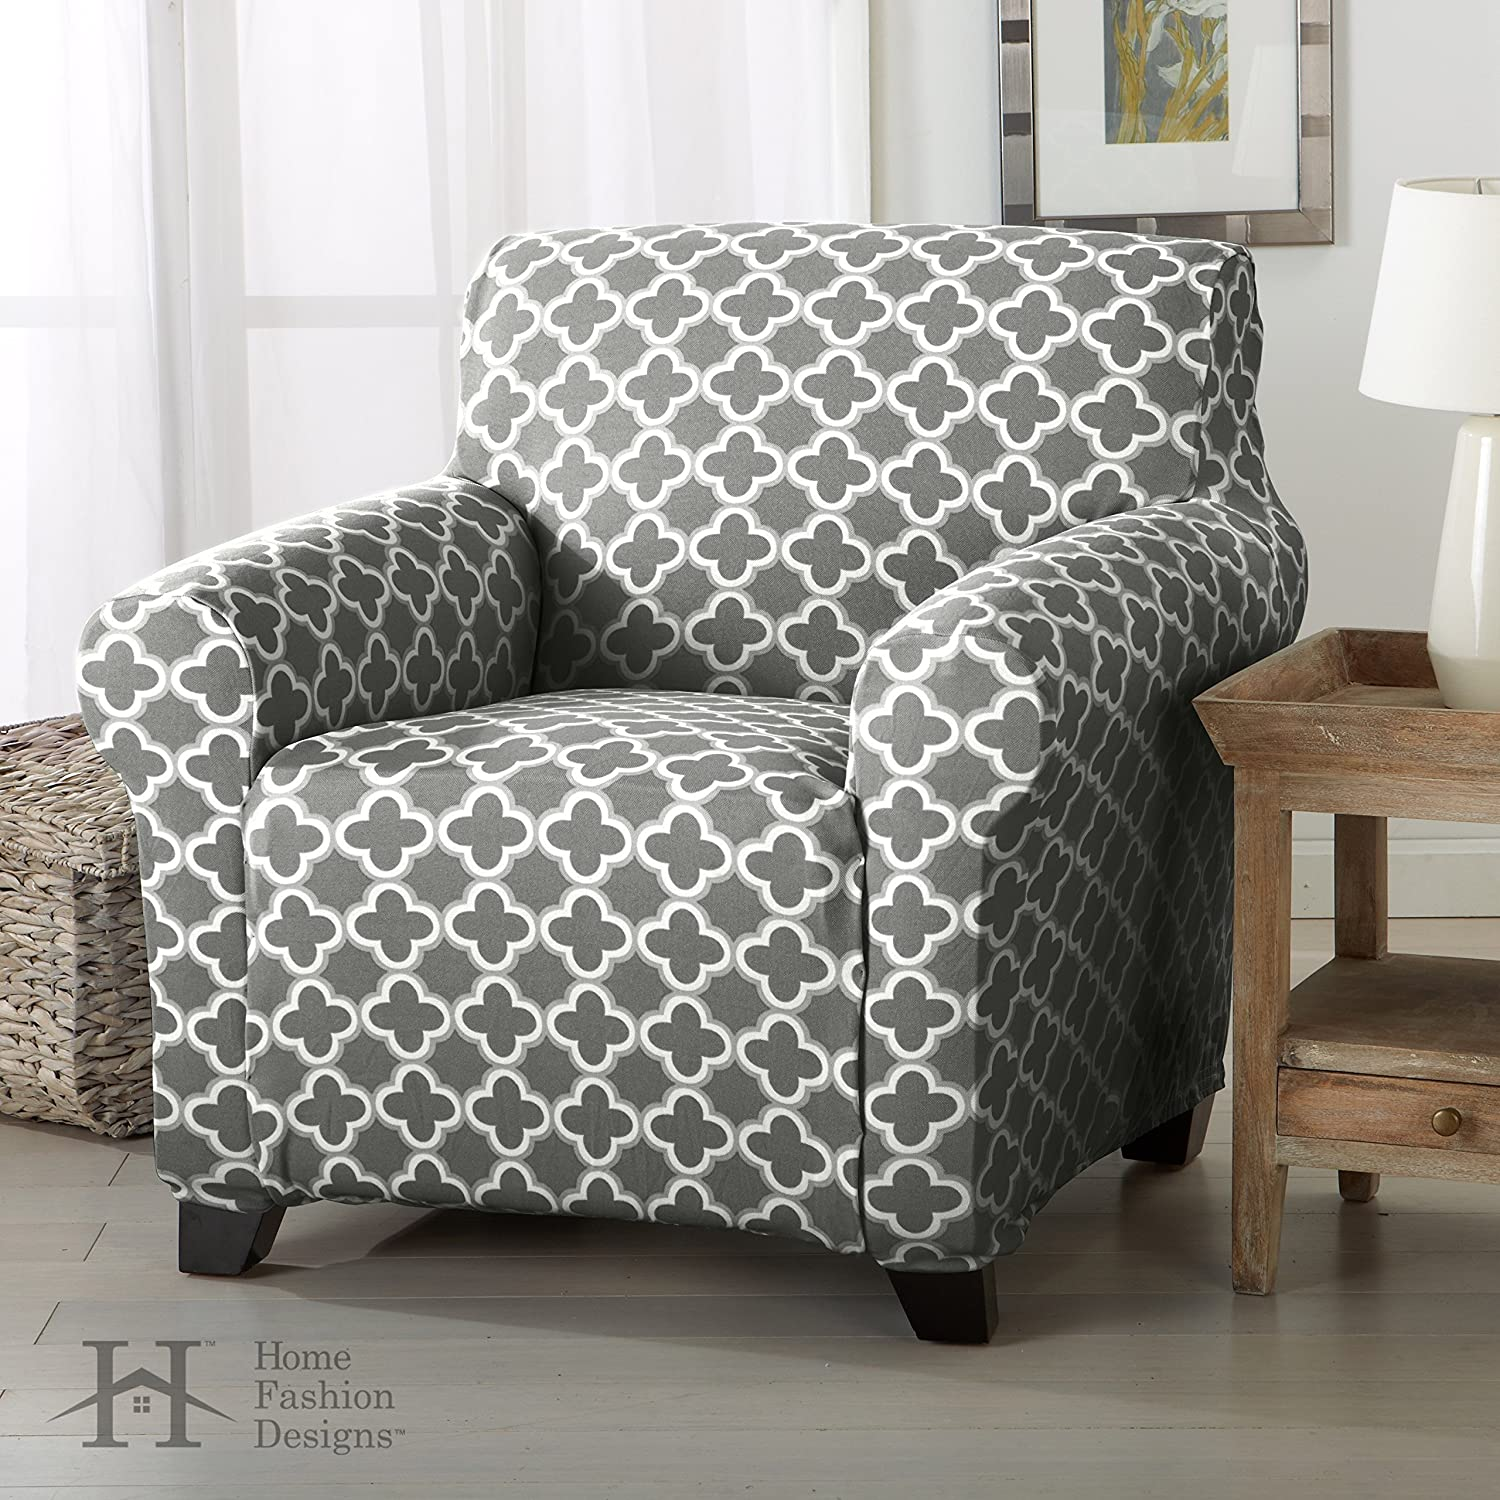 Brenna Collection Basic Strapless Slipcover. By Home Fashion Designs Brand.  (Chair, Charcoal)